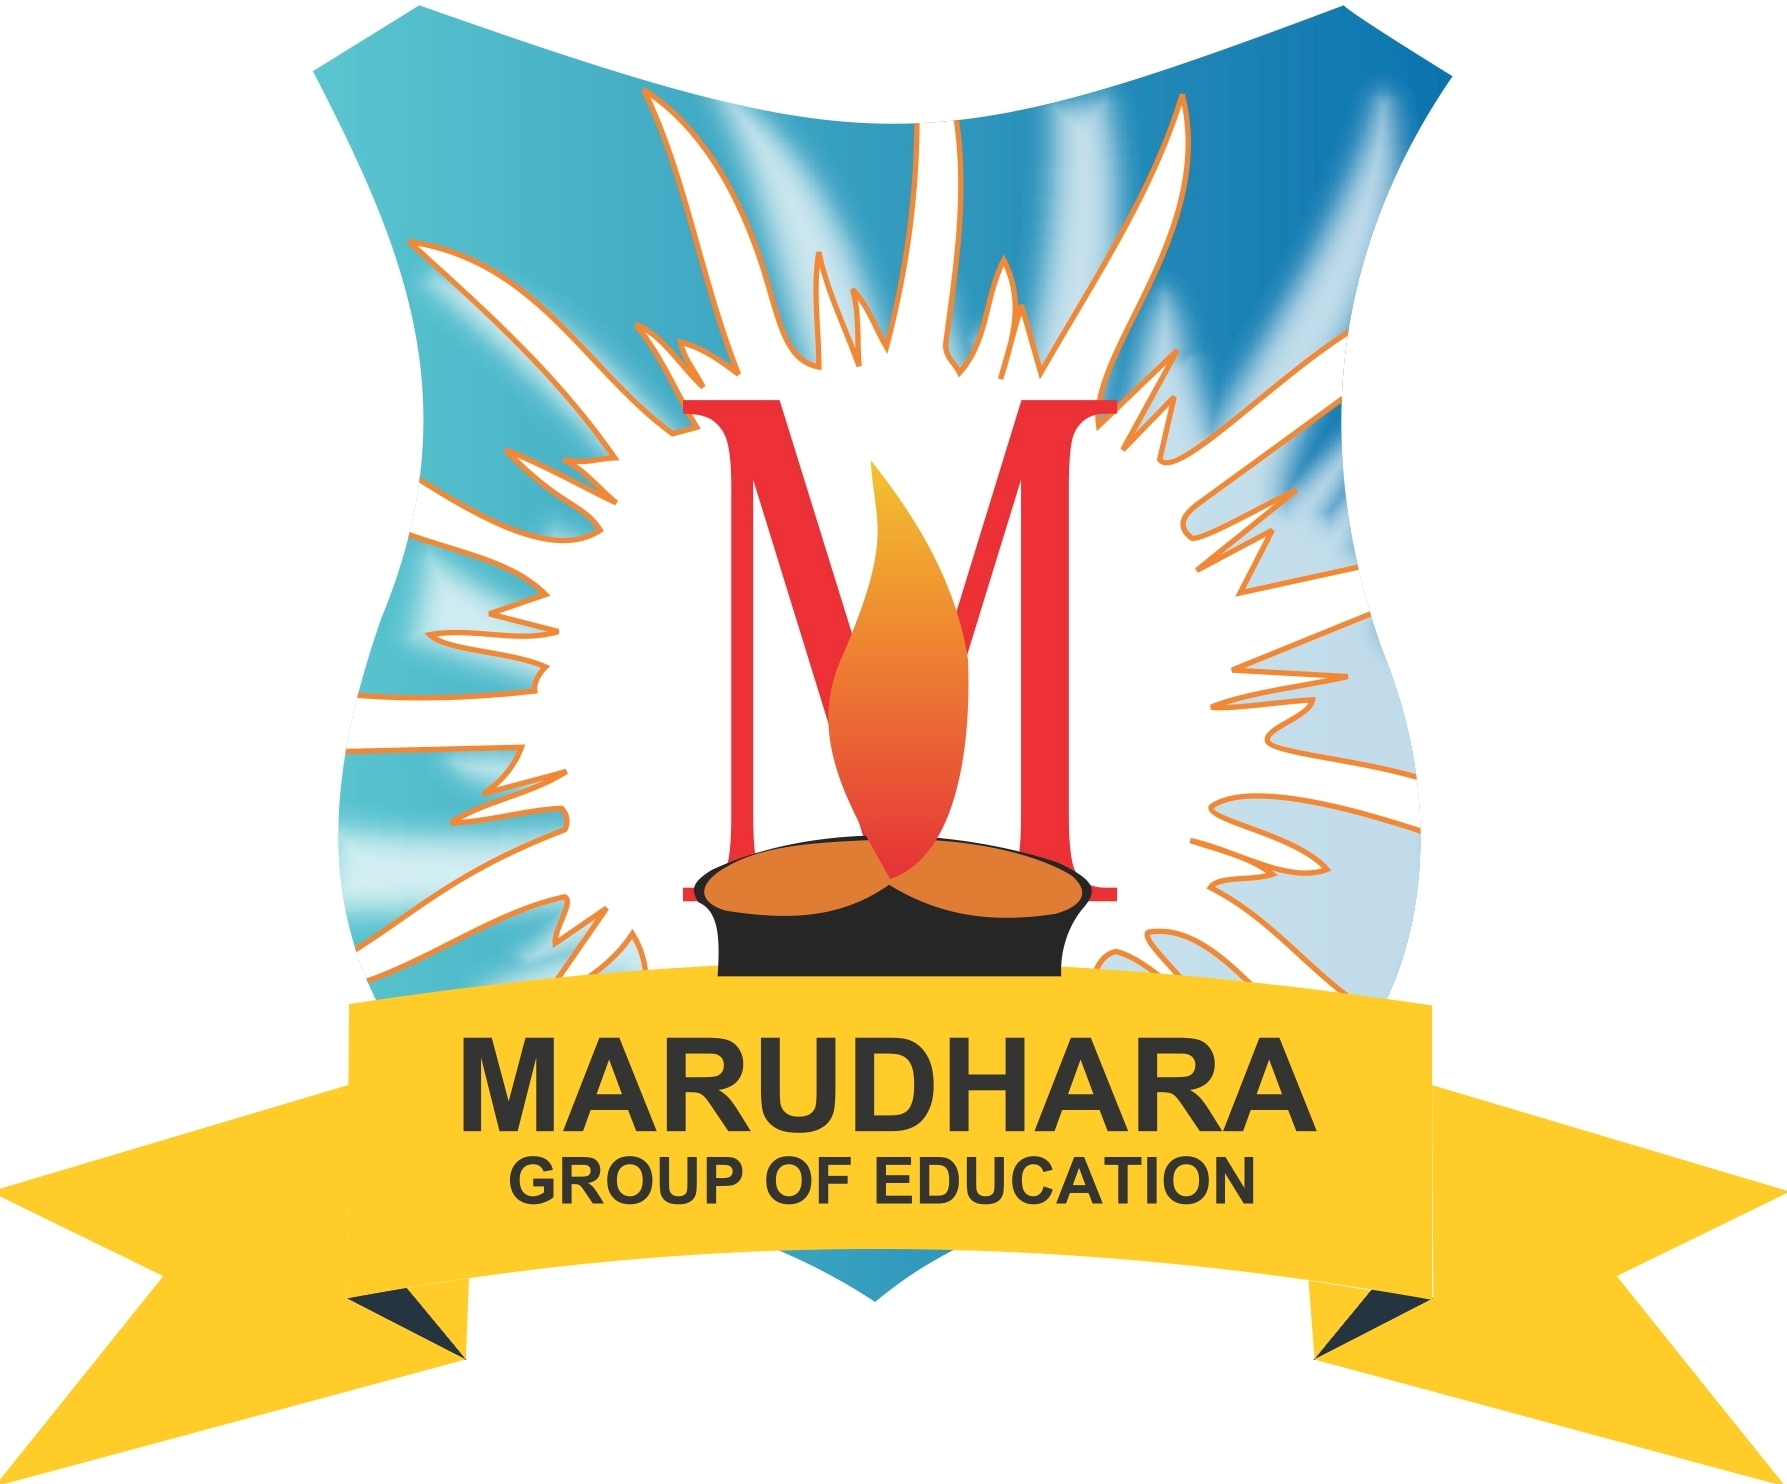 Marudhara Group